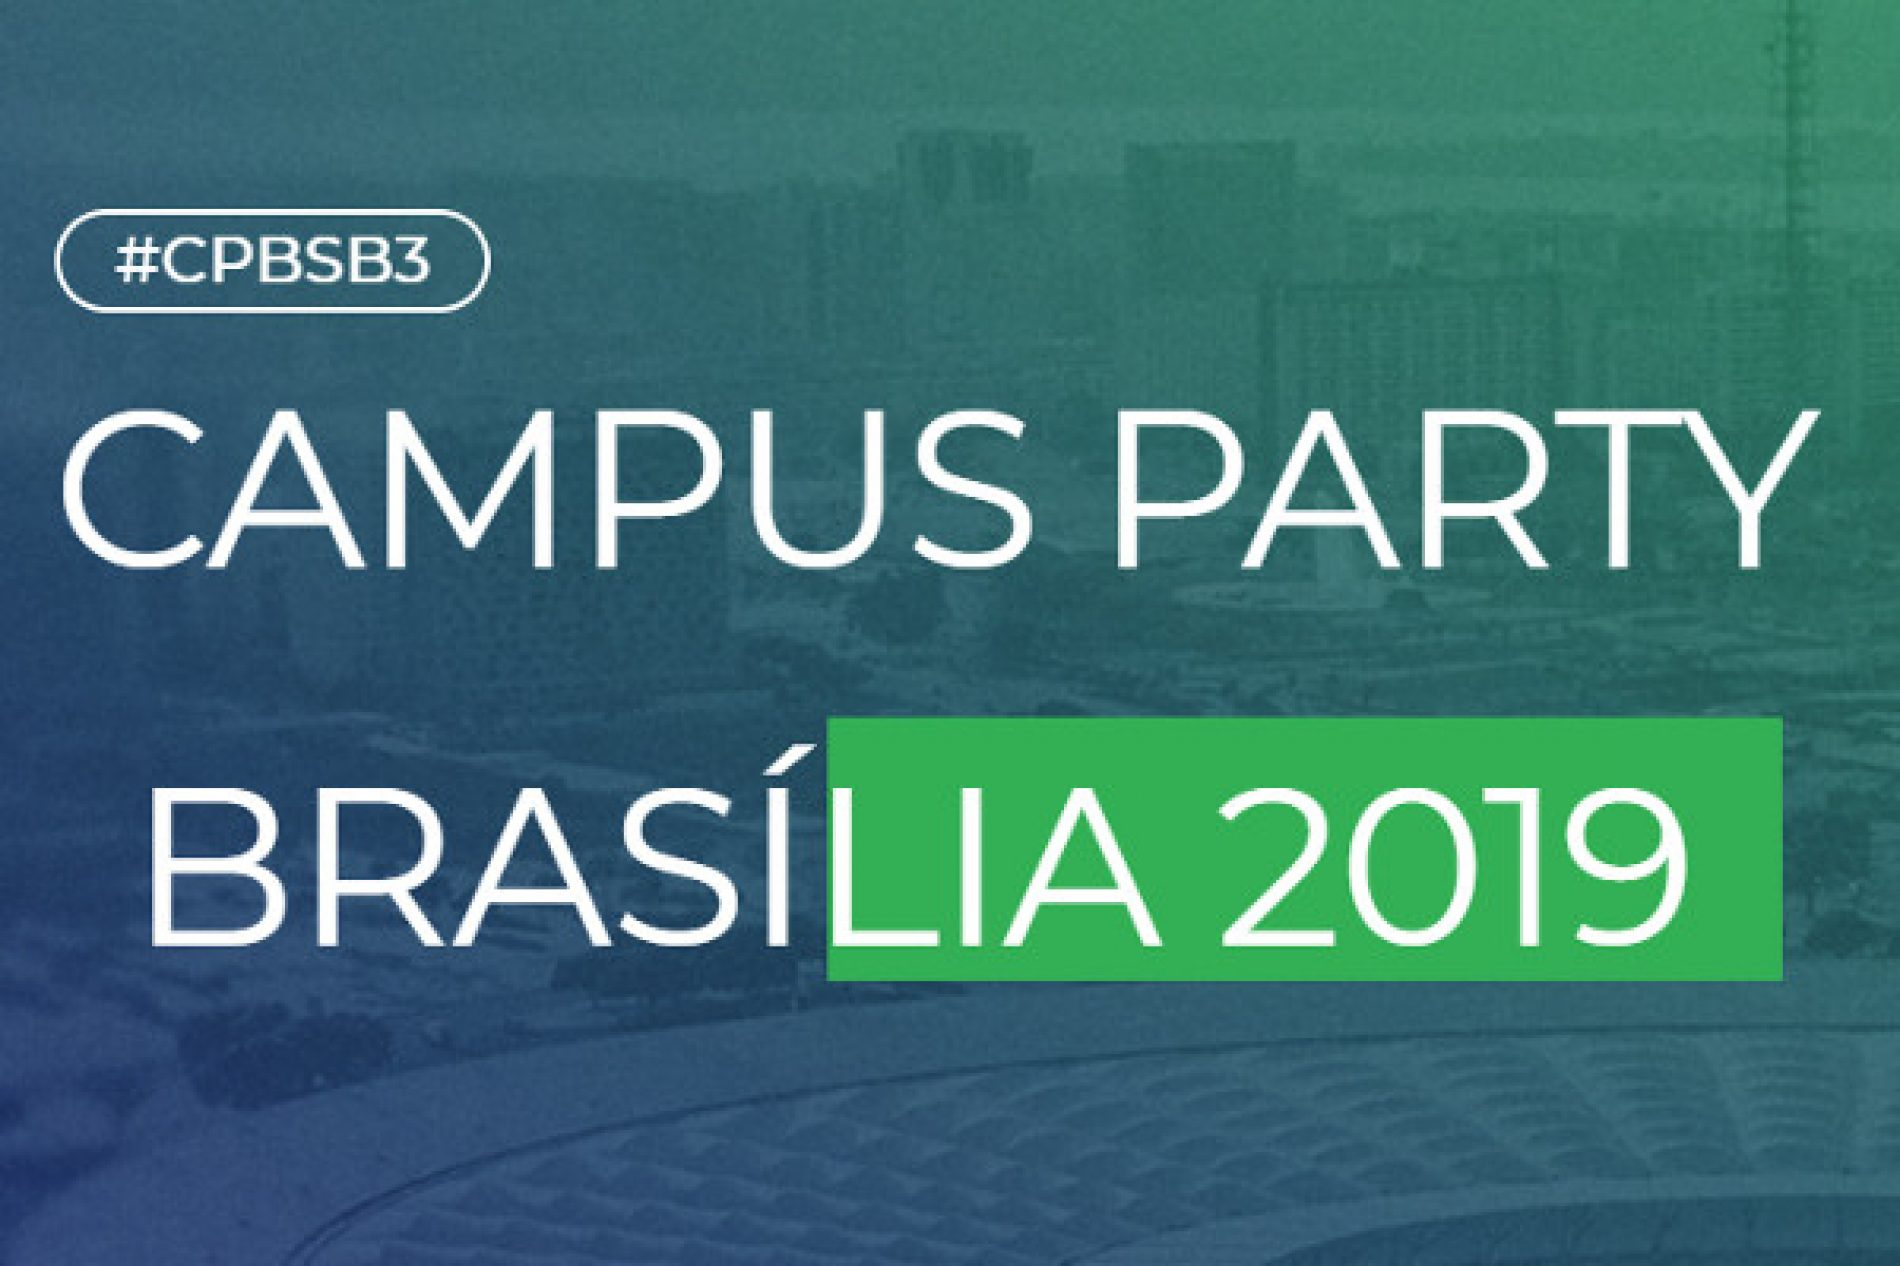 A 4Linux estará presente na Campus Party Brasília #CPBSB3